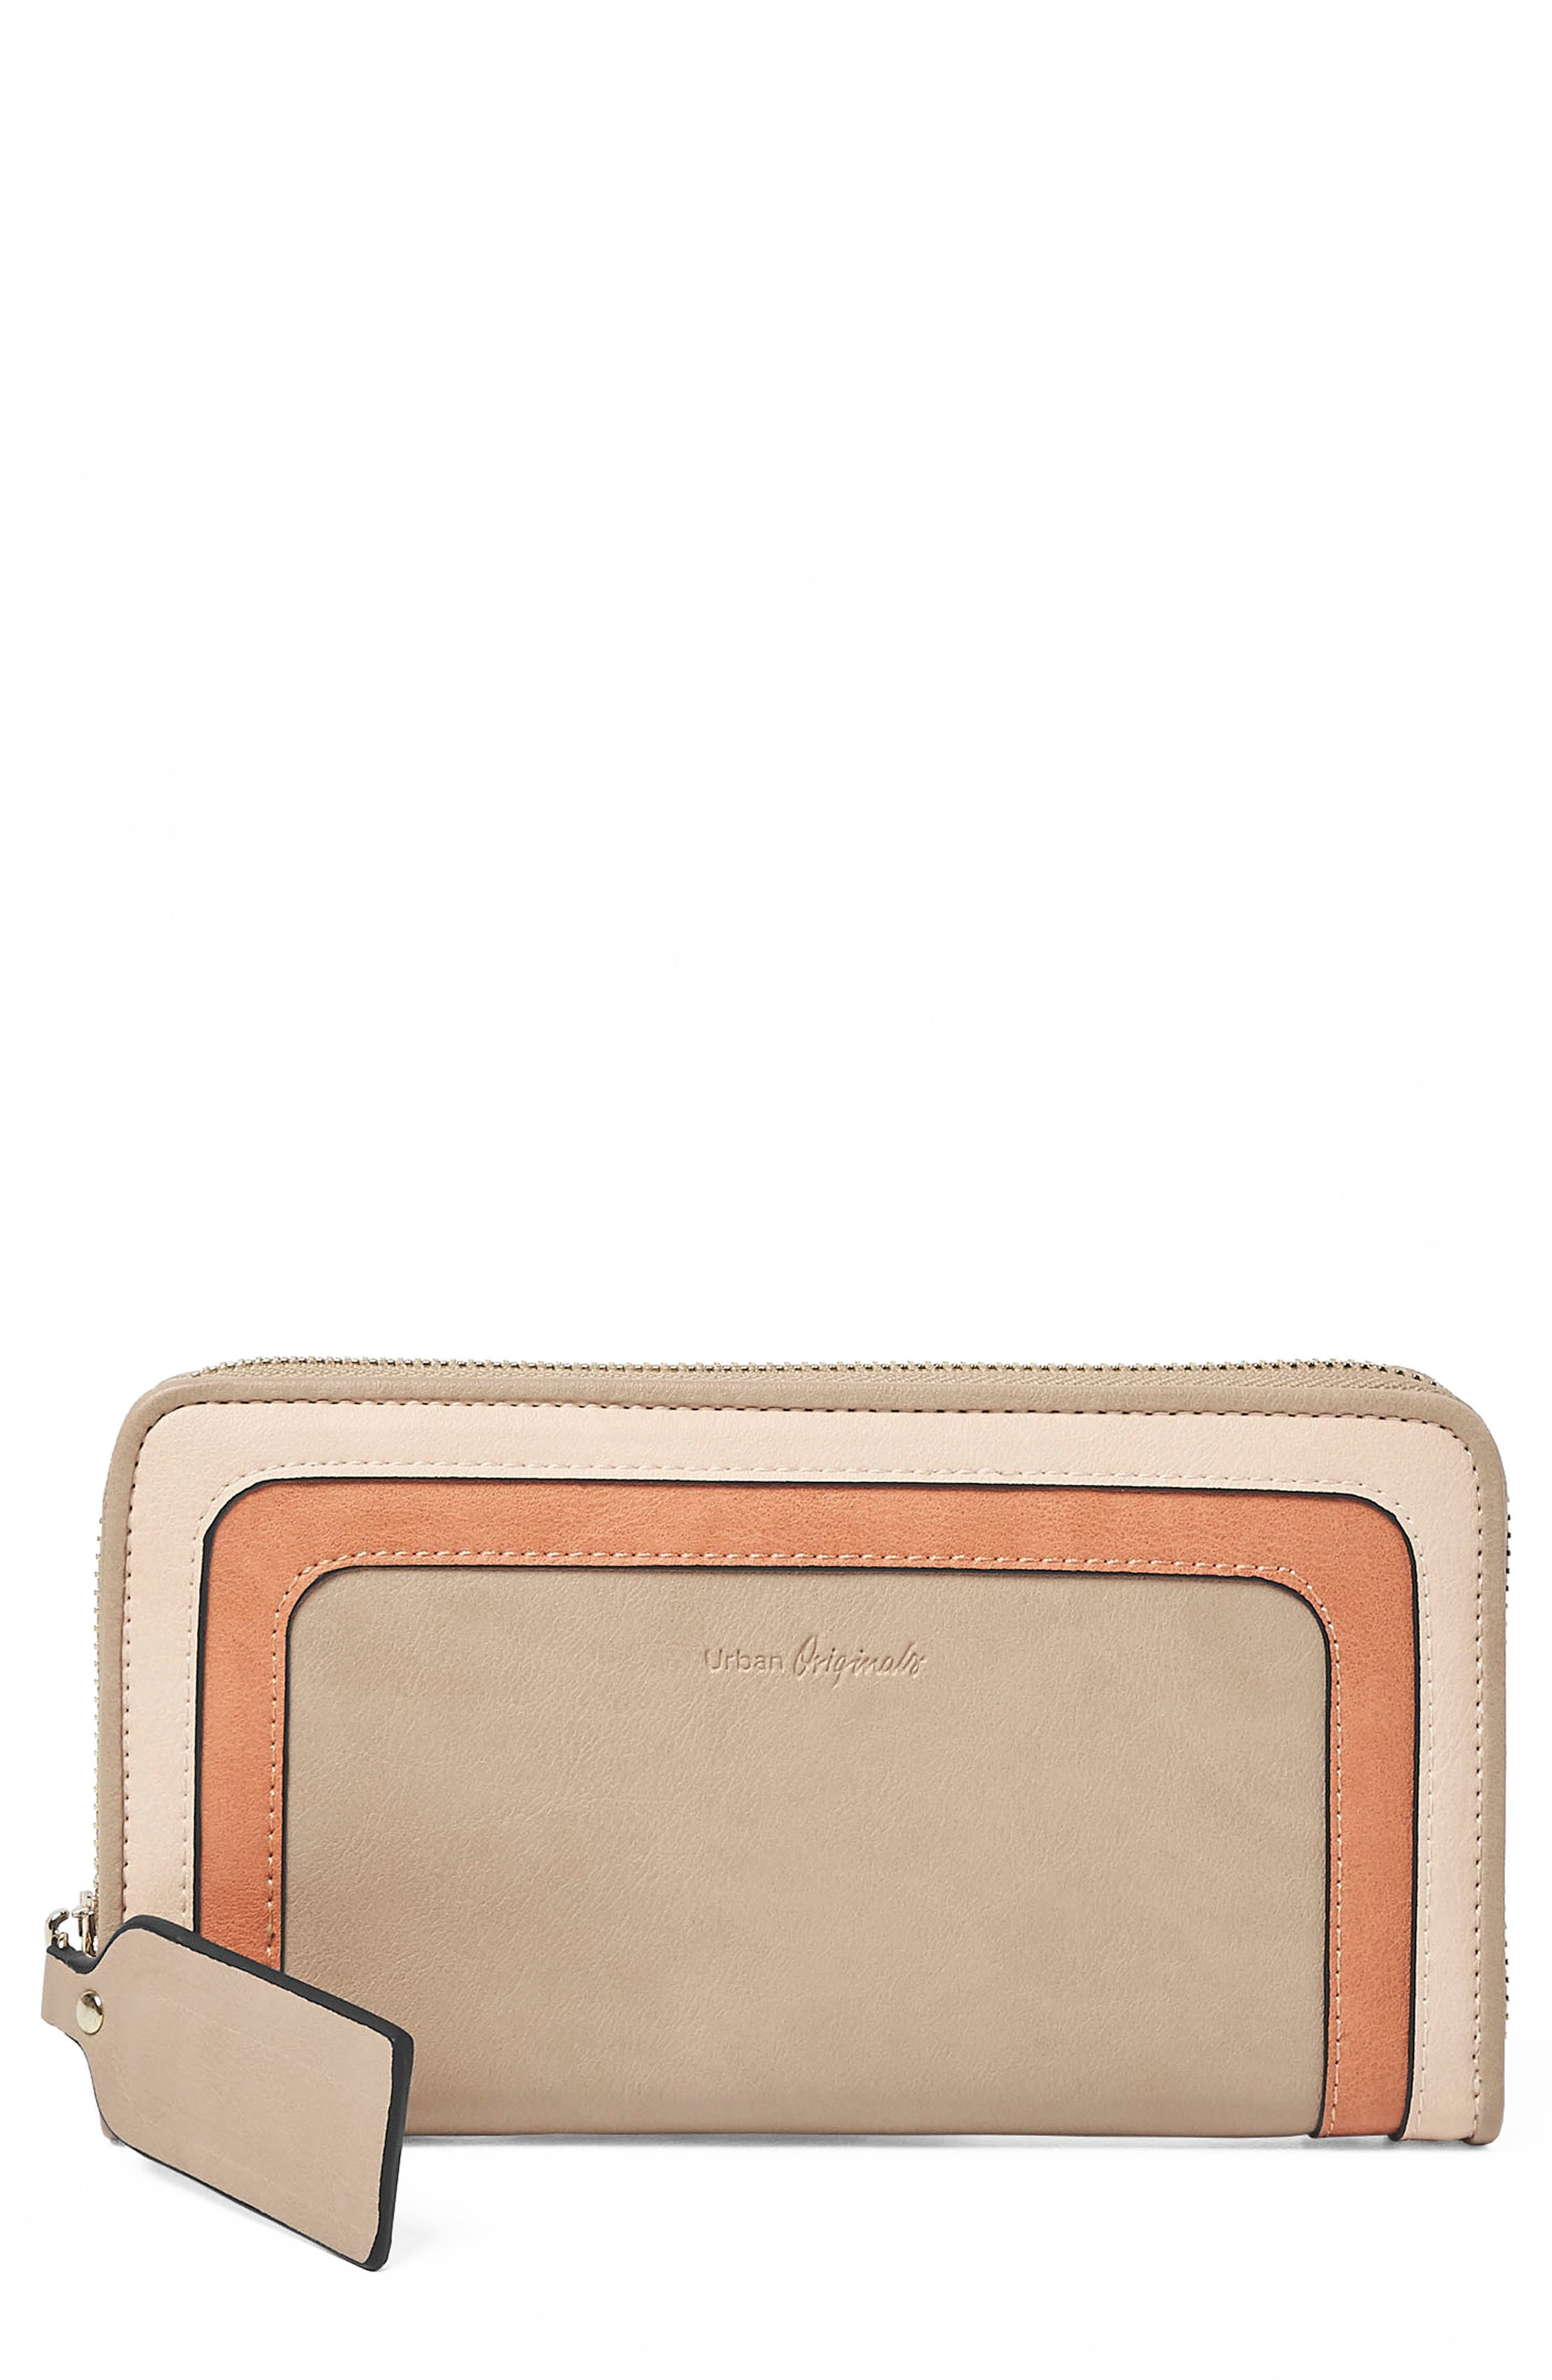 Drama Queen Faux Leather Zip Wallet,                         Main,                         color, Taupe